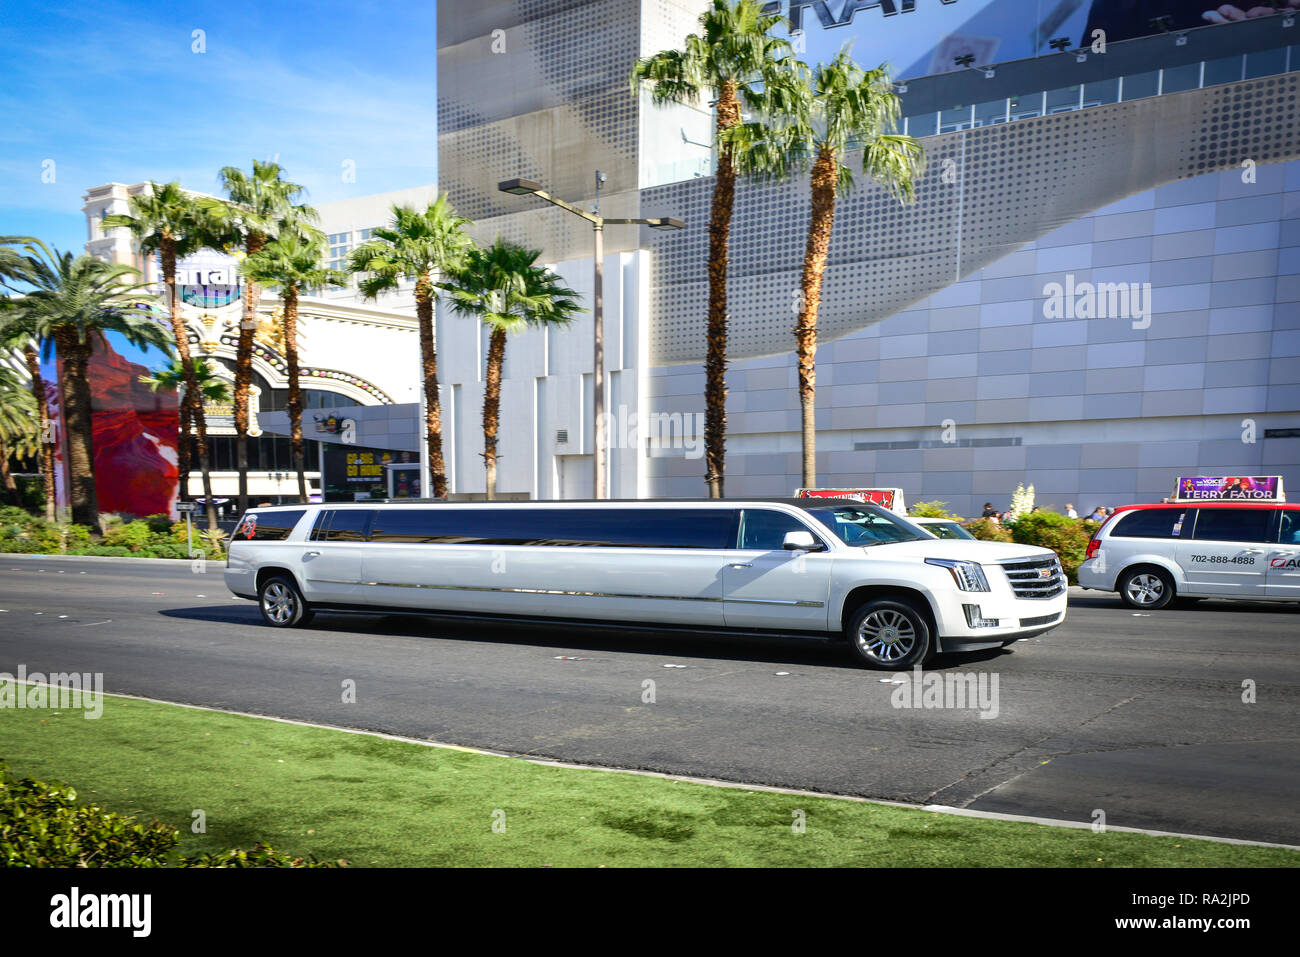 A white Cadillac stretch limousine traveling on the Las Vegas Strip in front of the Linq Hotel and Casino in Las Vegas, NV on a sunny day Stock Photo